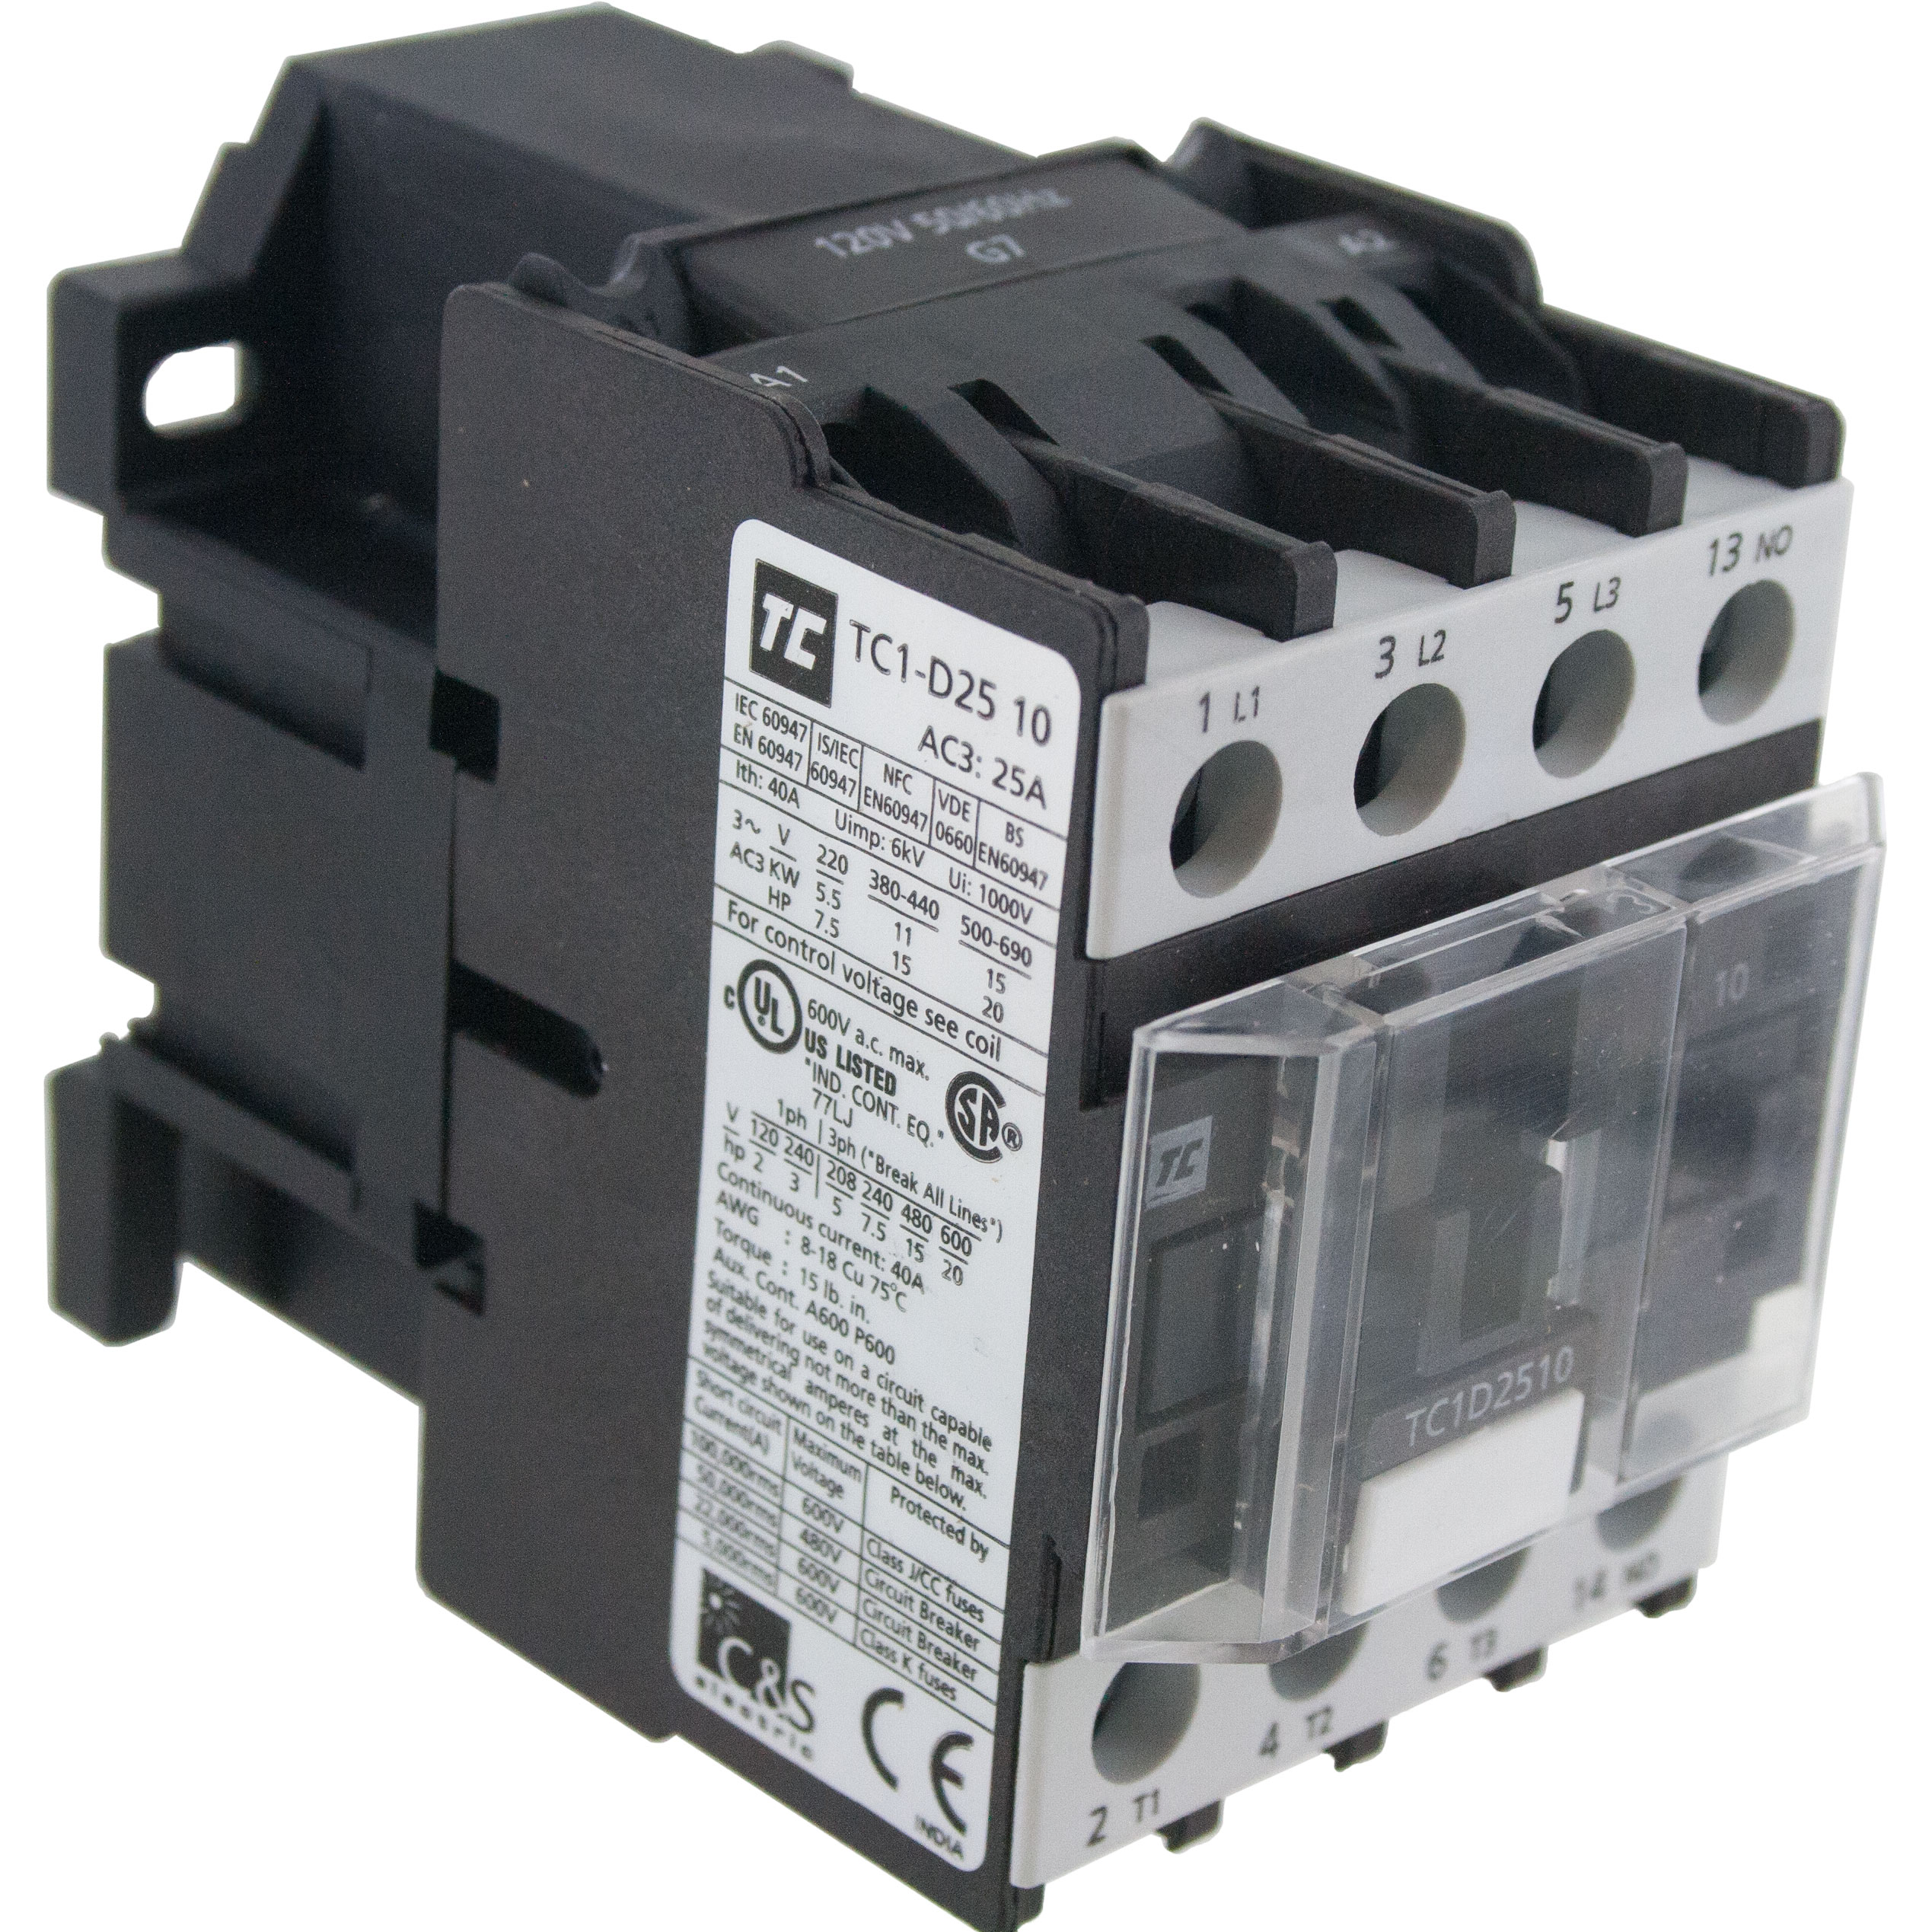 3 Pole Contactor 25 Amp 1 N O 24 Volt Ac Coil Tc1d2510b7 Elecdirect Details About Push Button 5 Circuit Breaker For 12 50 Volts Dc